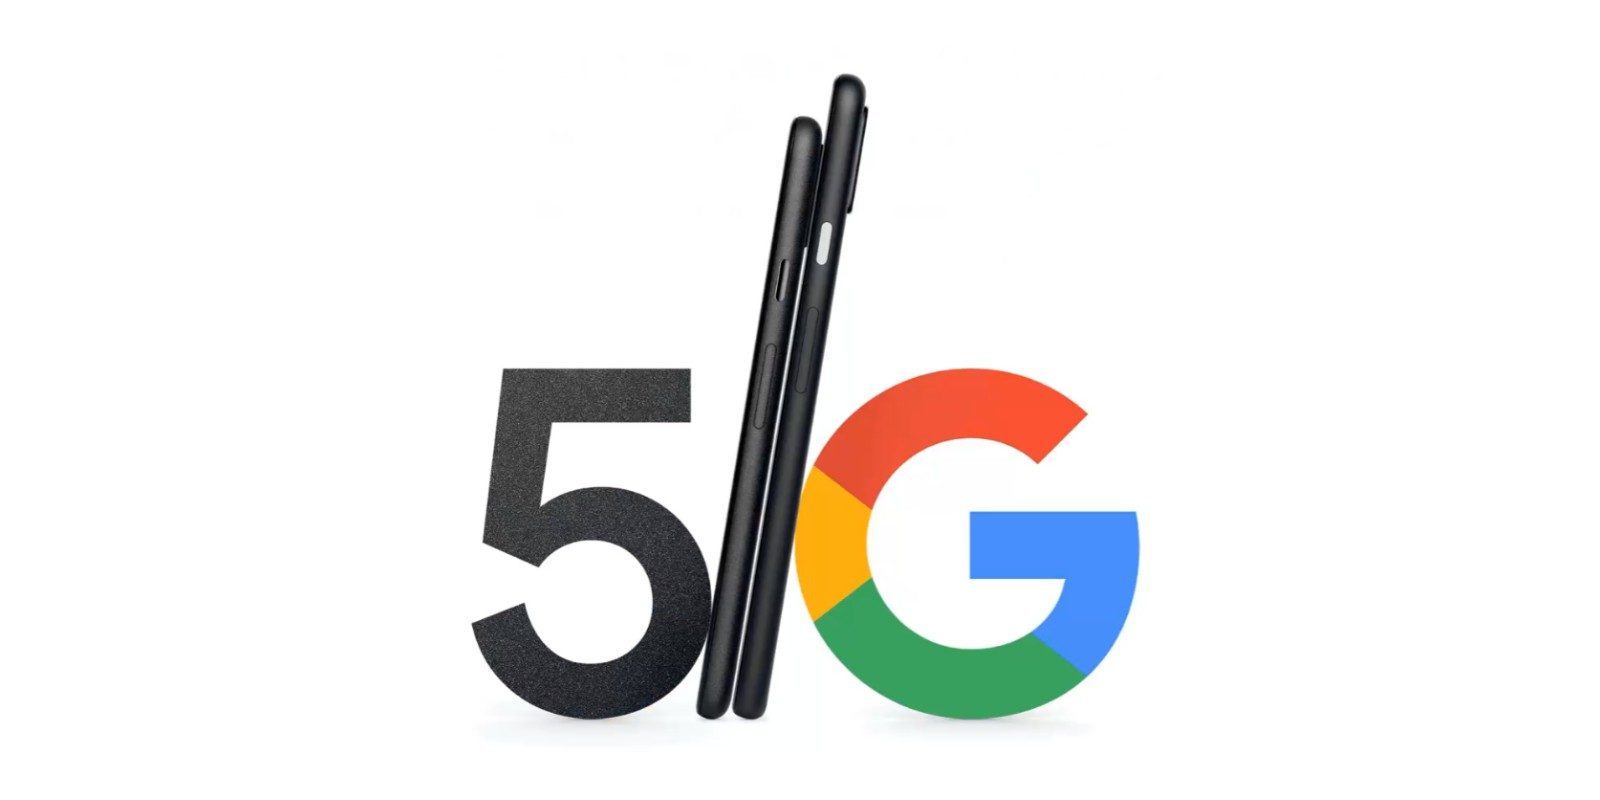 Google To Launch Pixel 5, Pixel 4a 5G On September 25